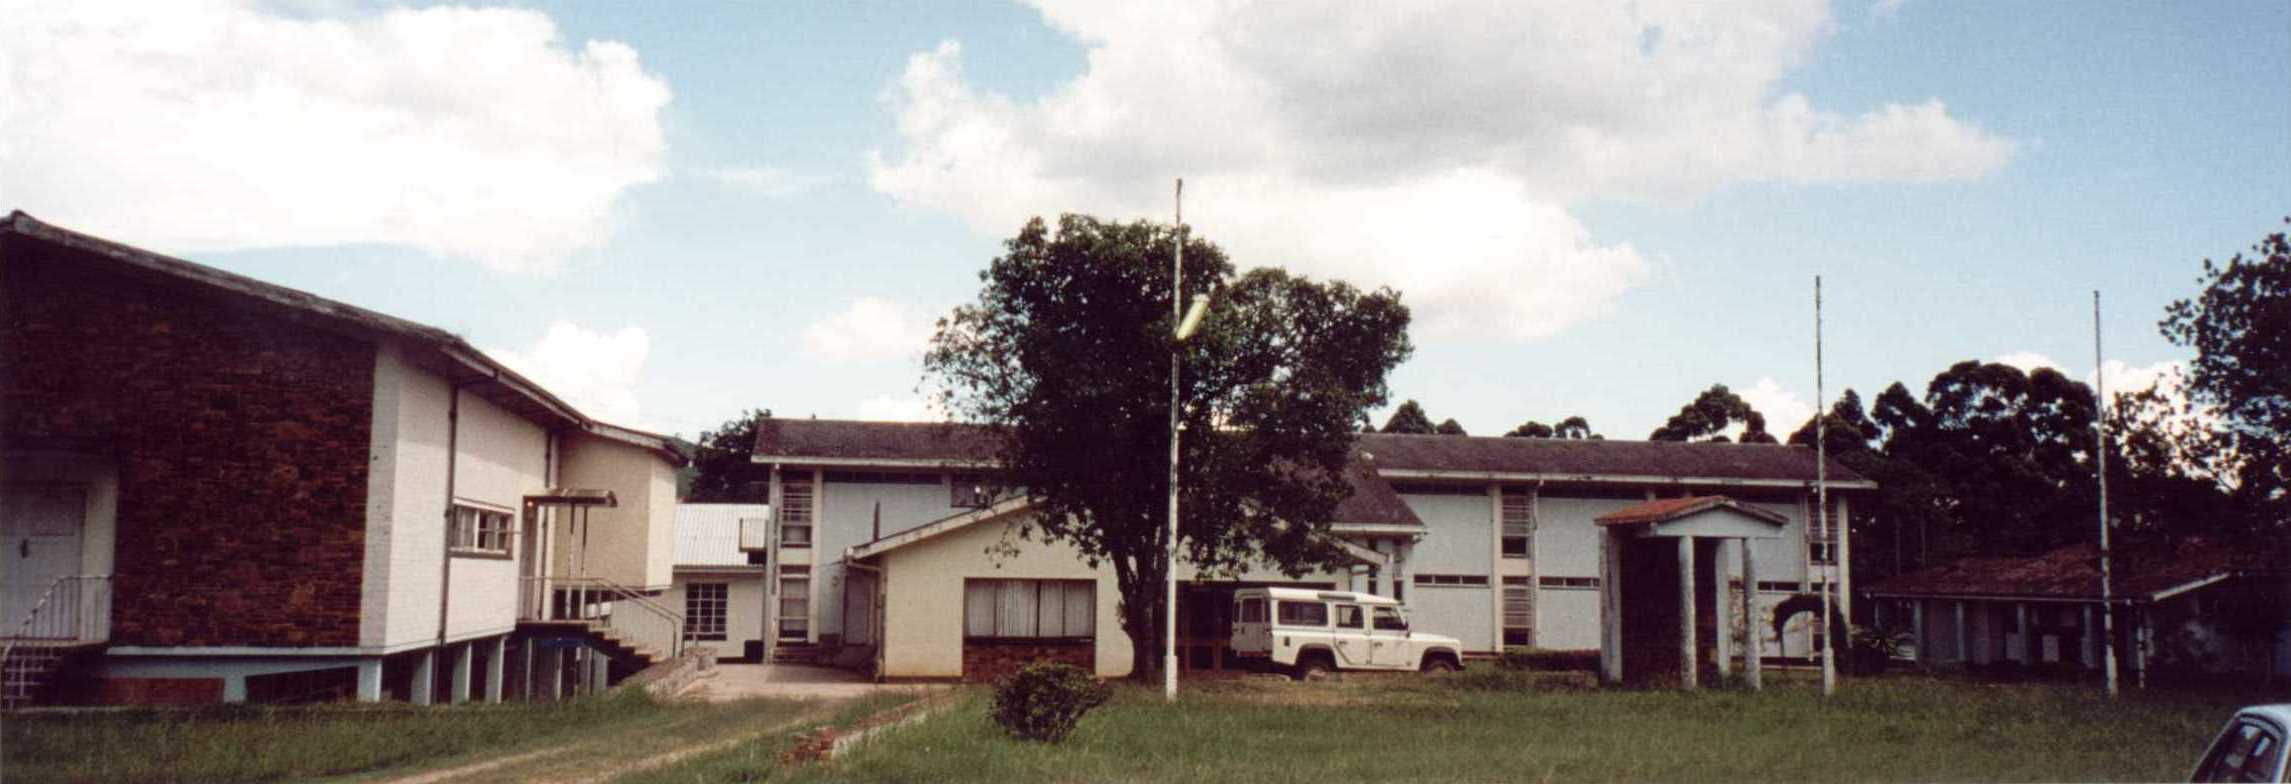 Eagle school buildings in 1999